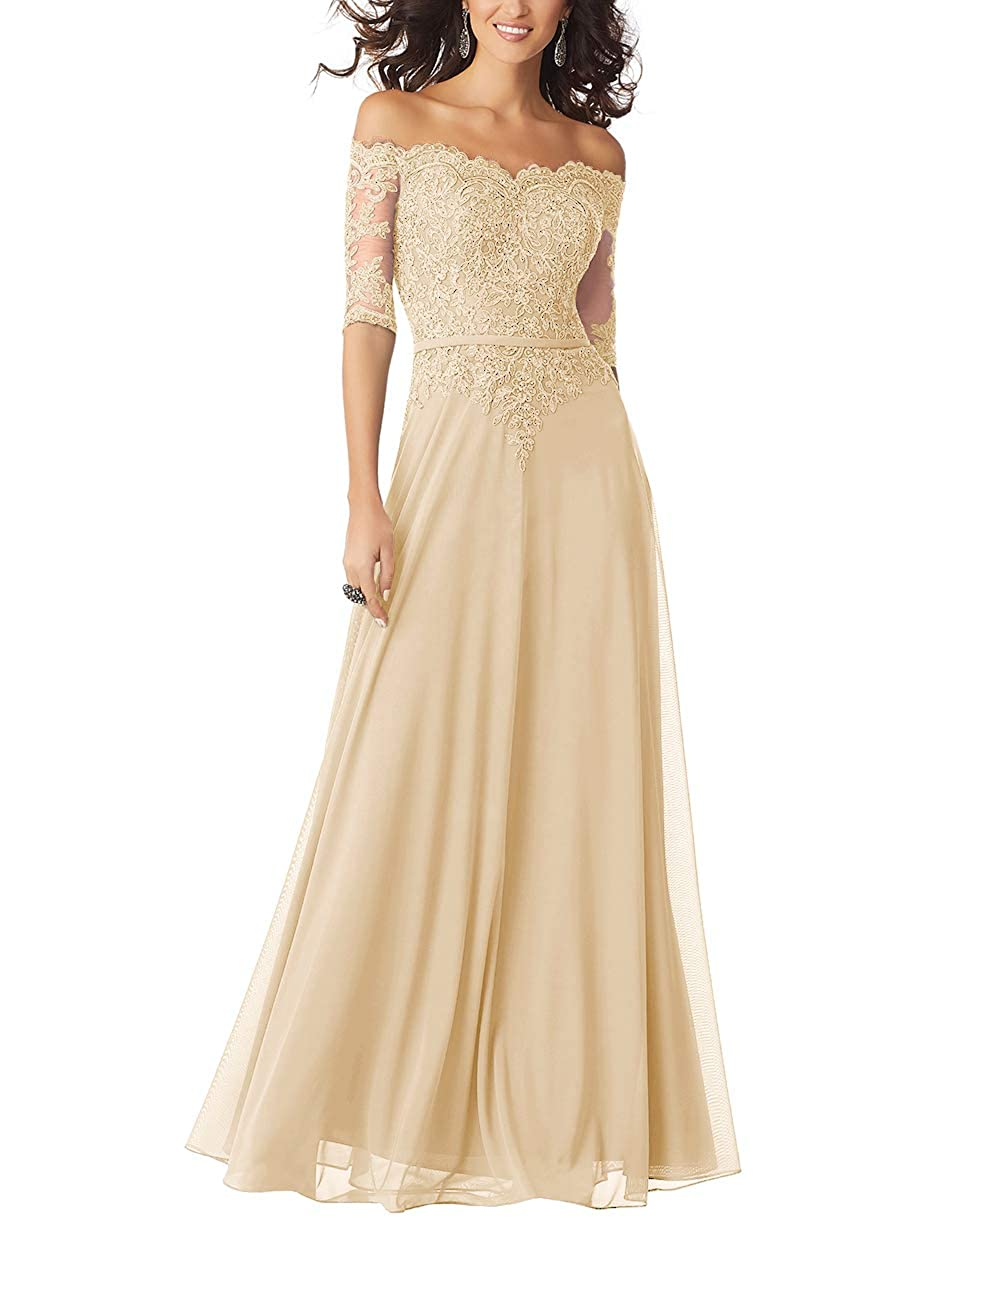 Champagne Women Lace Formal Evening Gown Half Sleeves Mother The Bride Dress